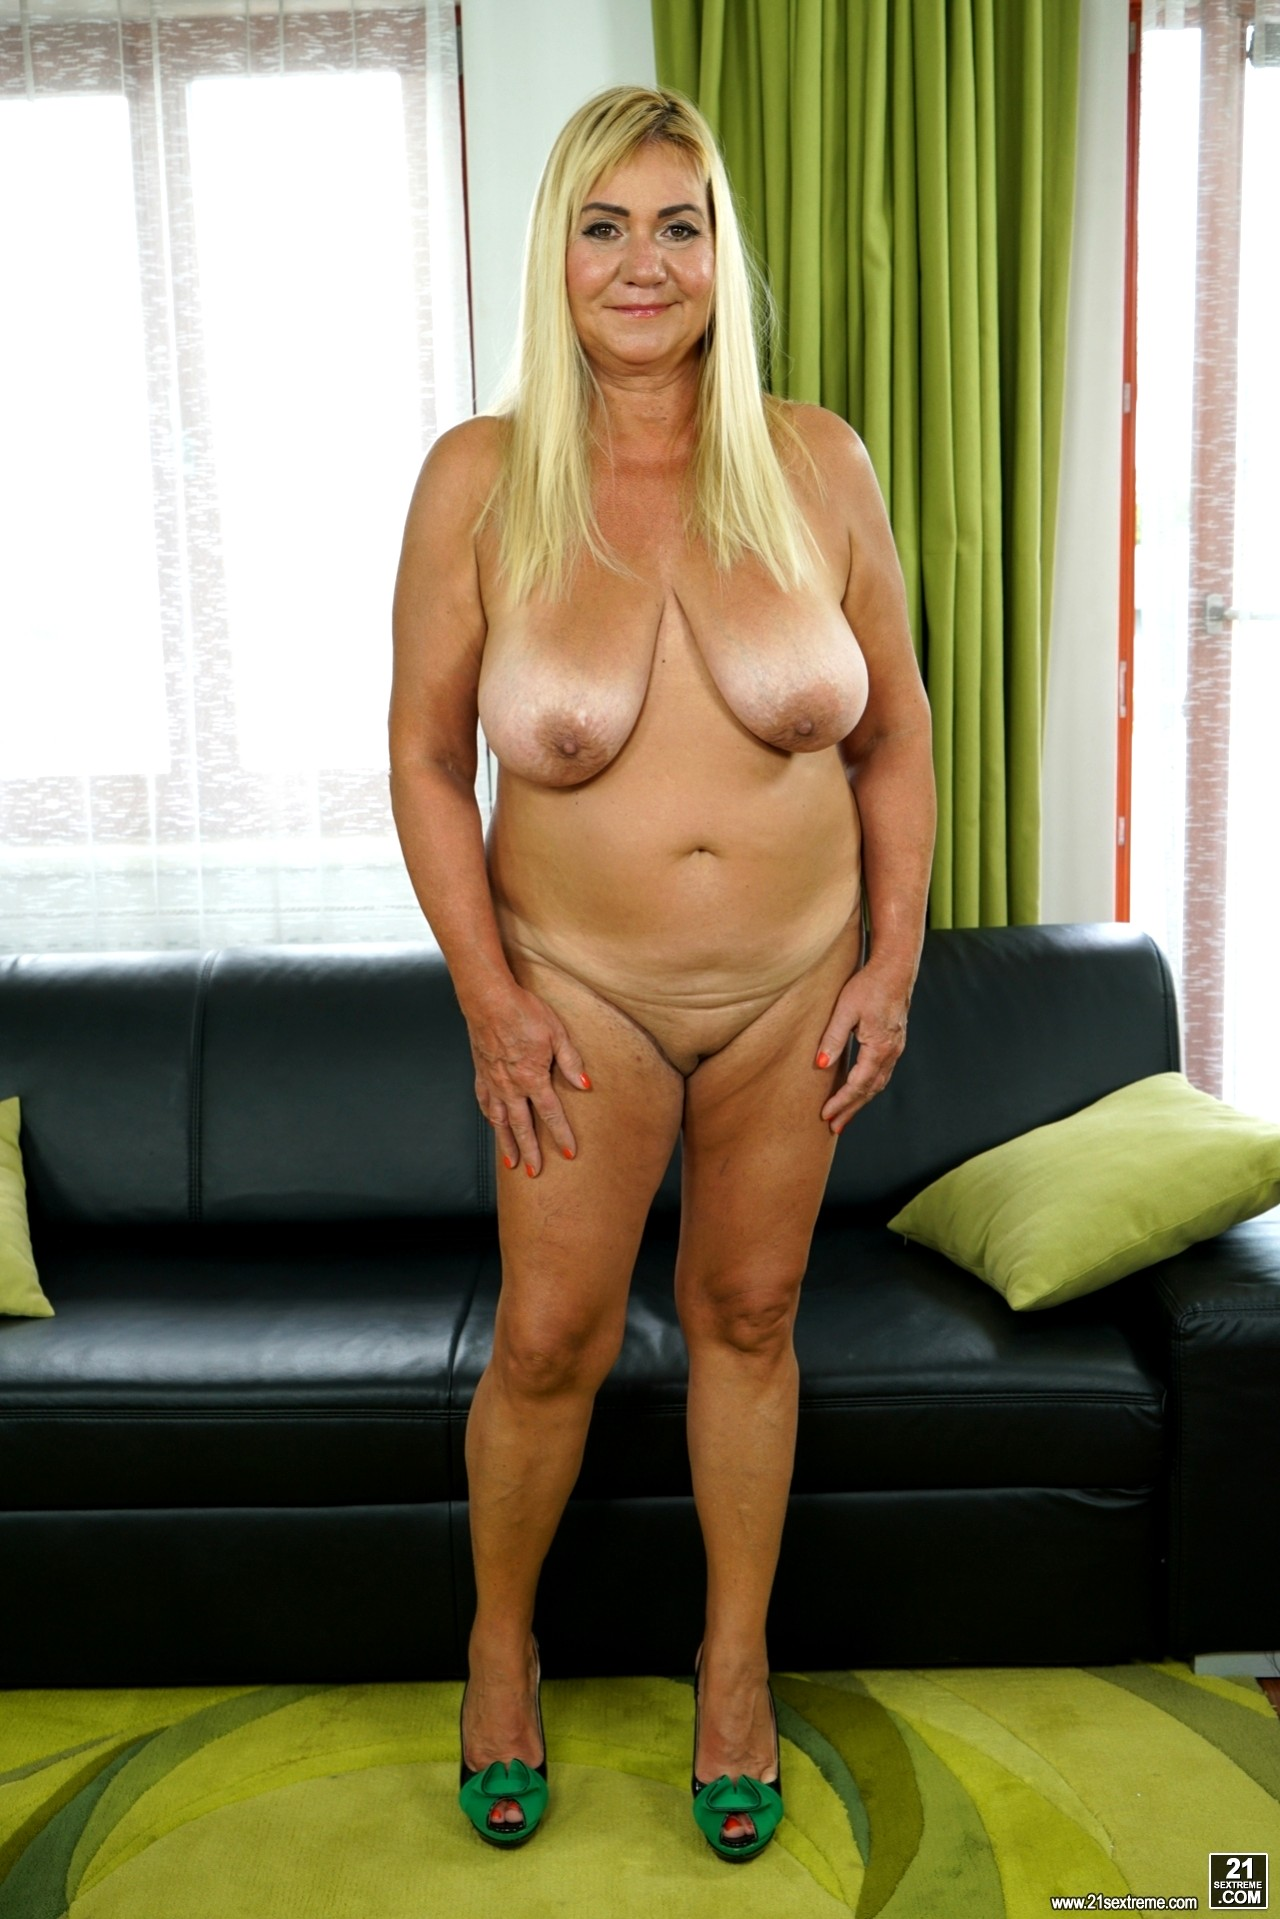 Sex Hd Mobile Pics 21 Sextury Pam Pink Brand New Mature Index-6102